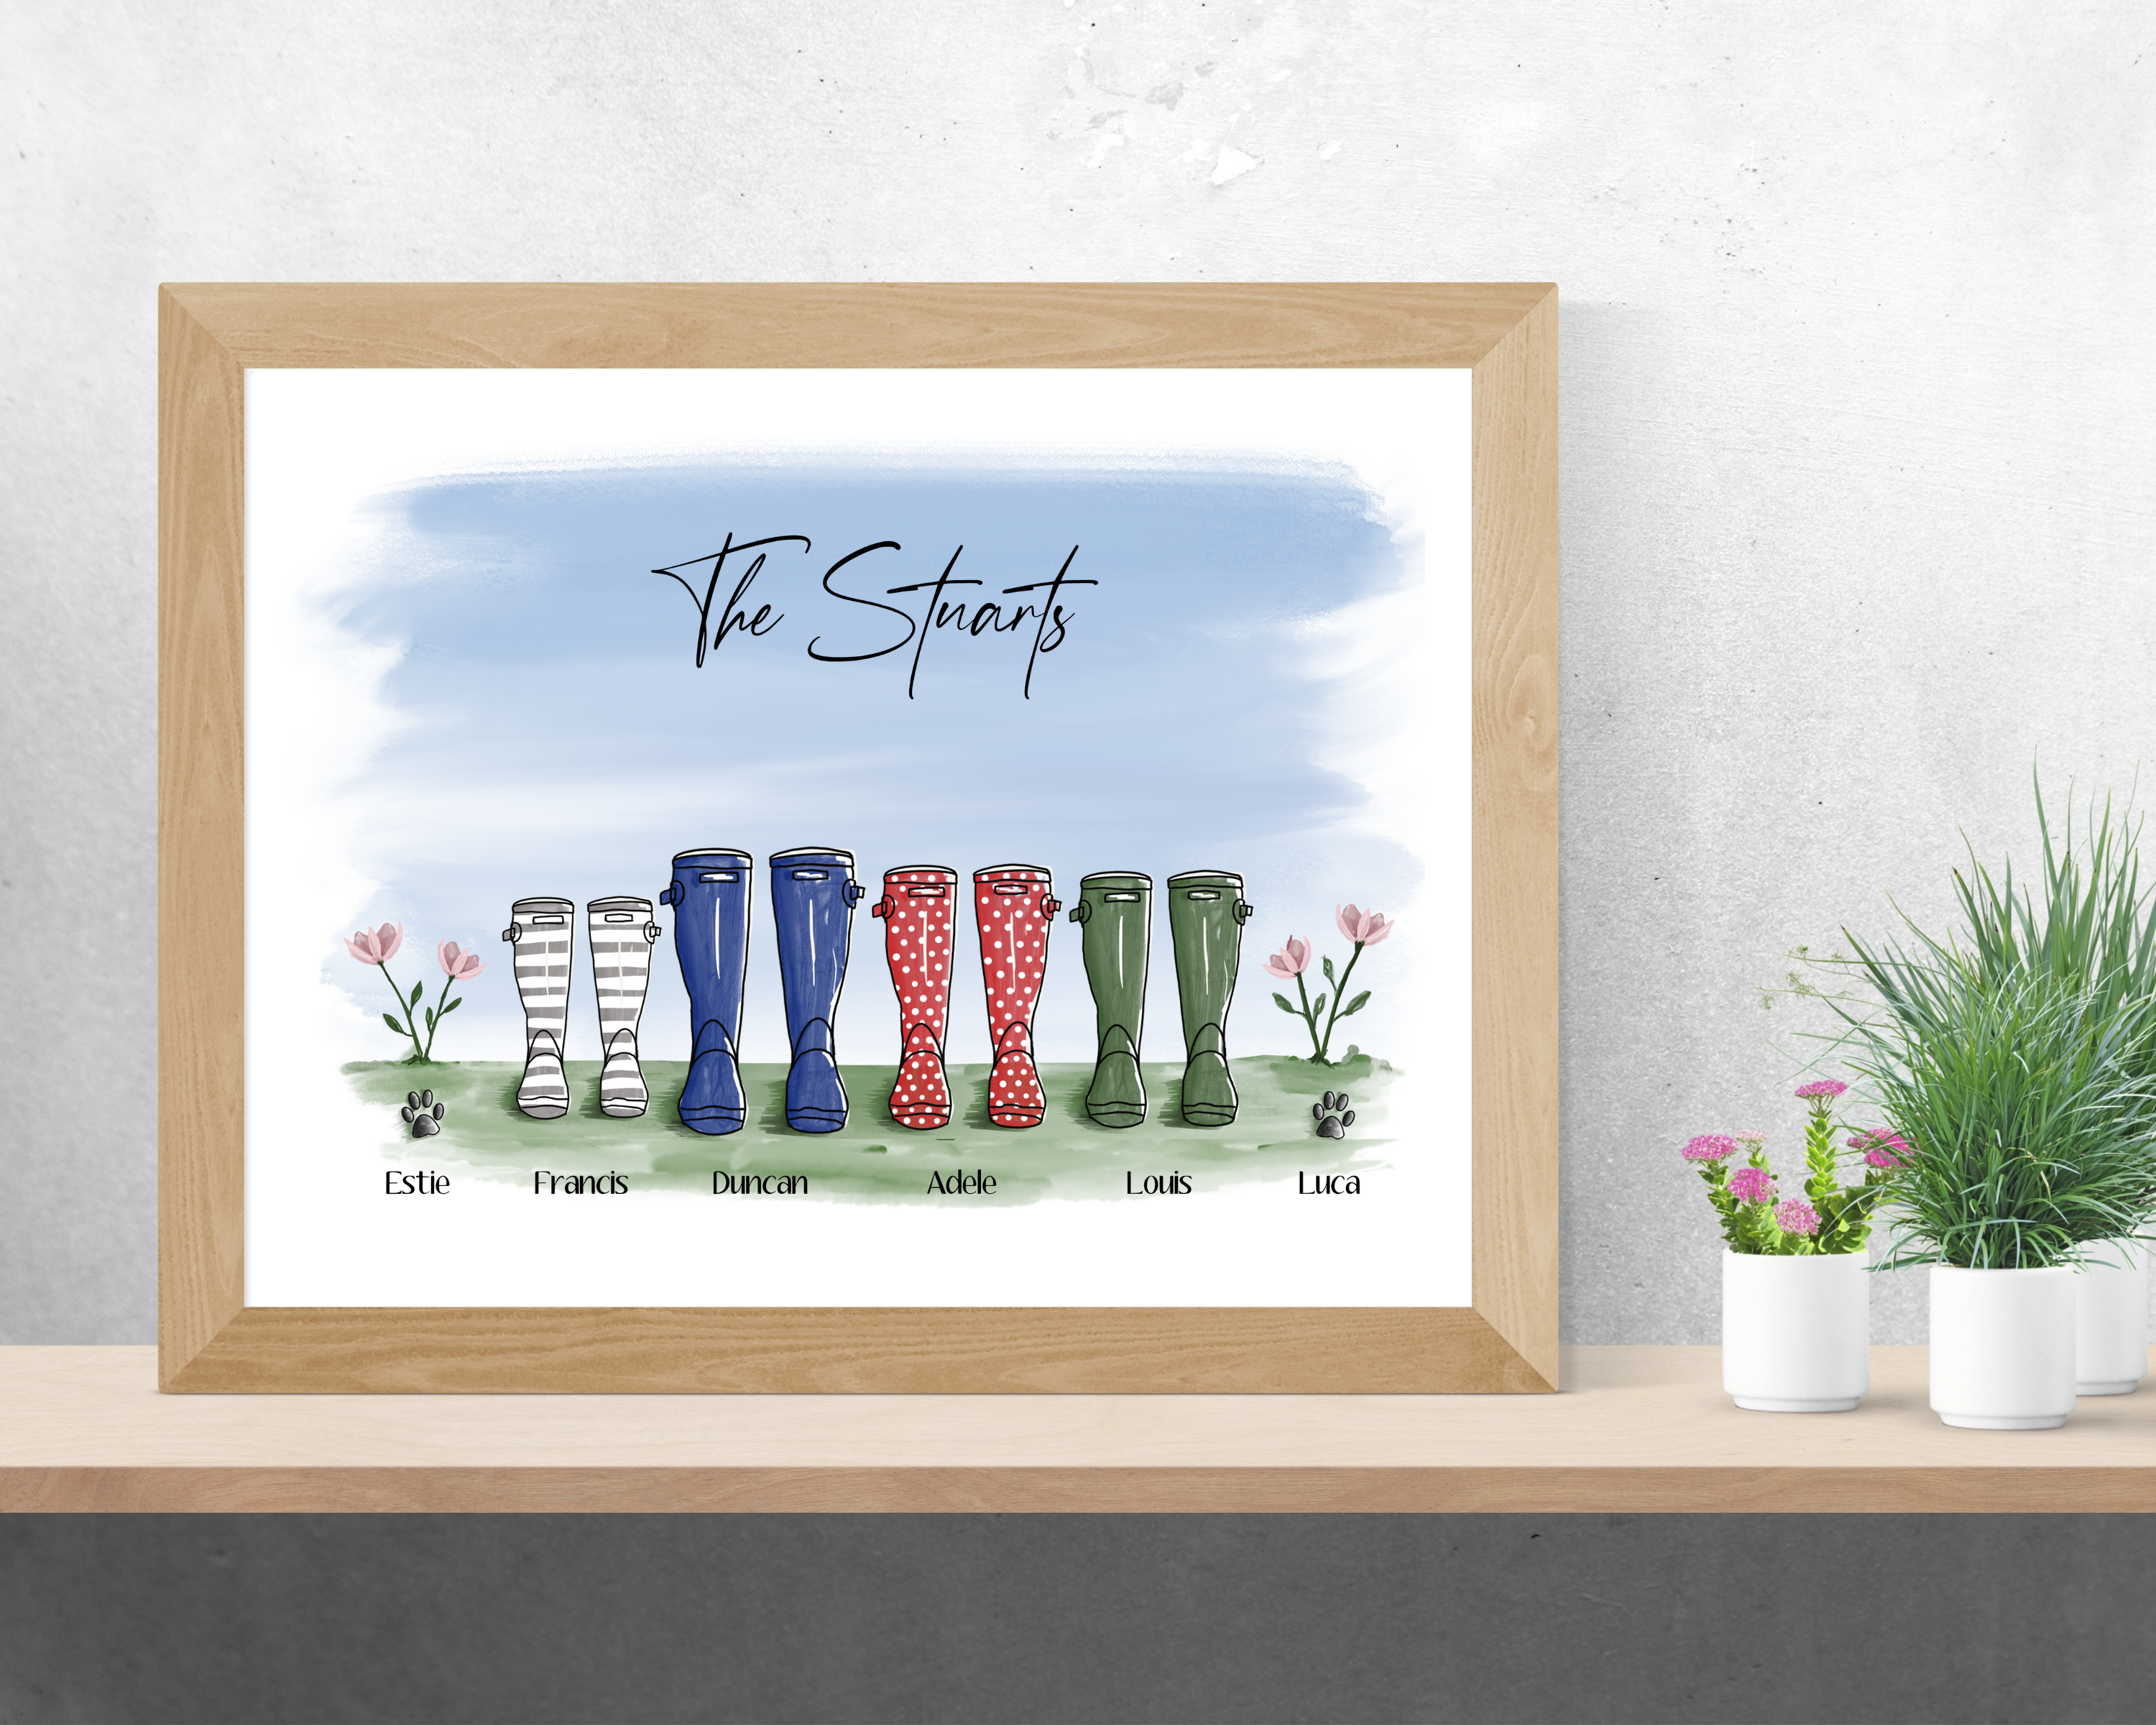 Poppleberry family of colourful wellington boots digital drawing art print, in a wooden frame on wall.